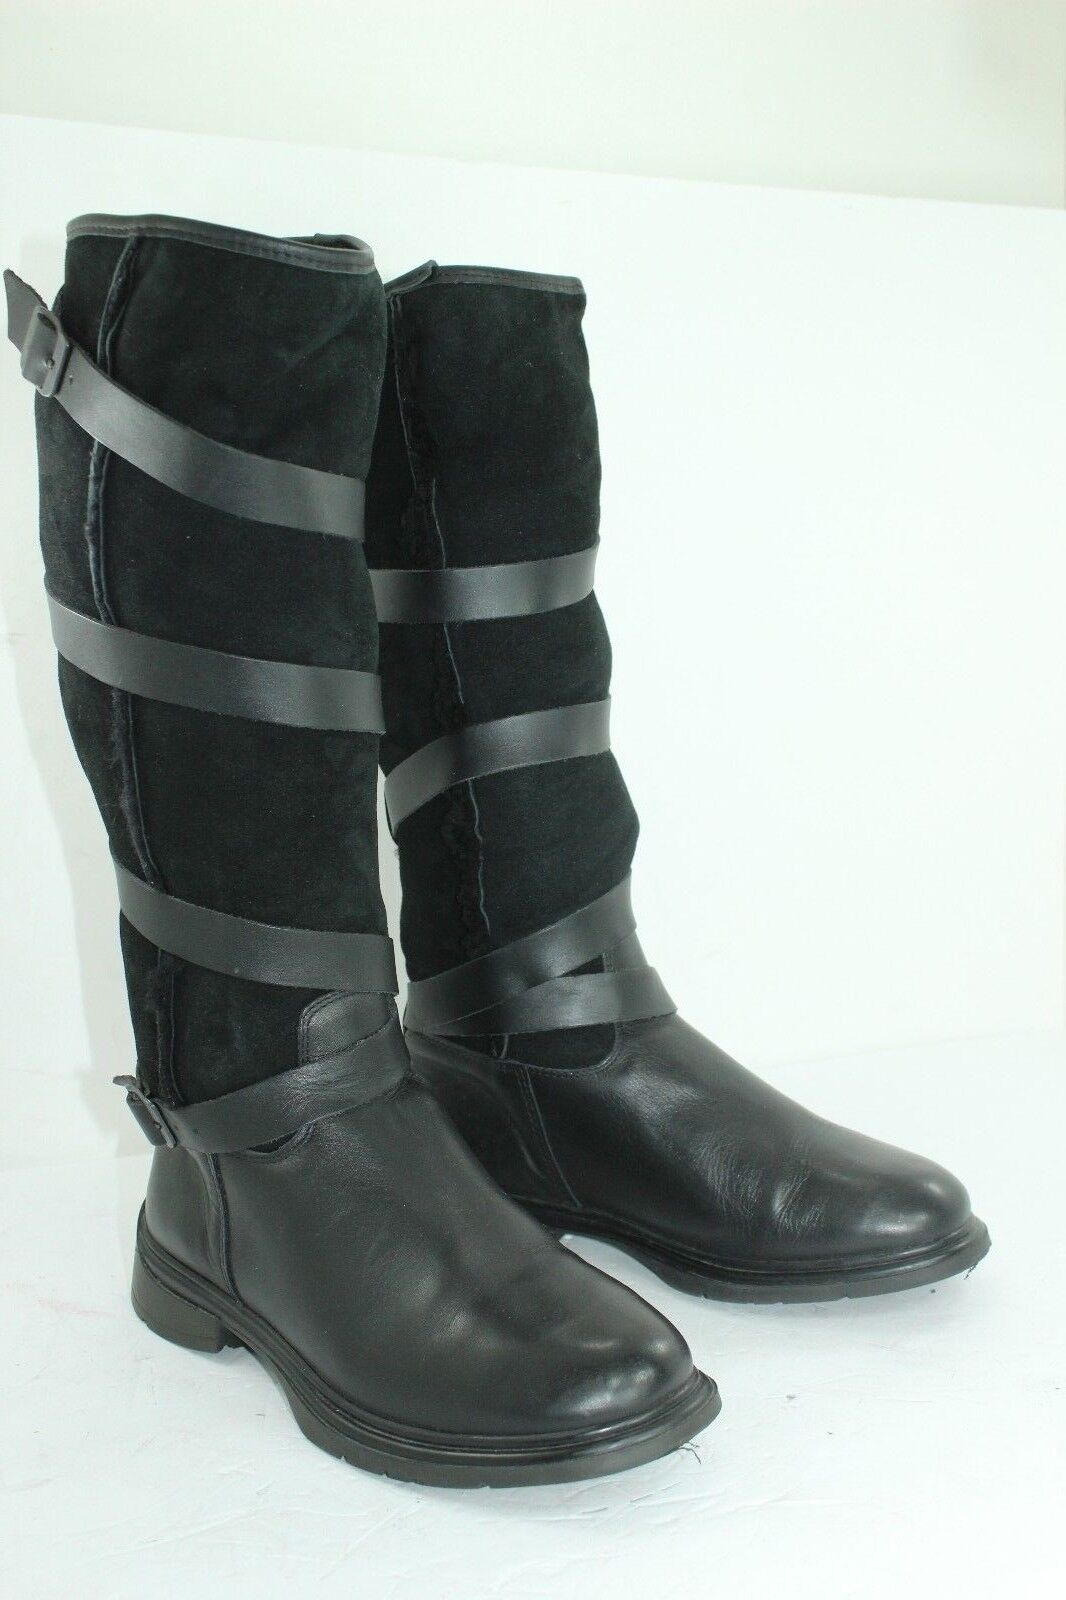 GENUINE SHEEP SKIN BOOTS MADE IN PORTUGAL SIZE 8 BLACK PAGE